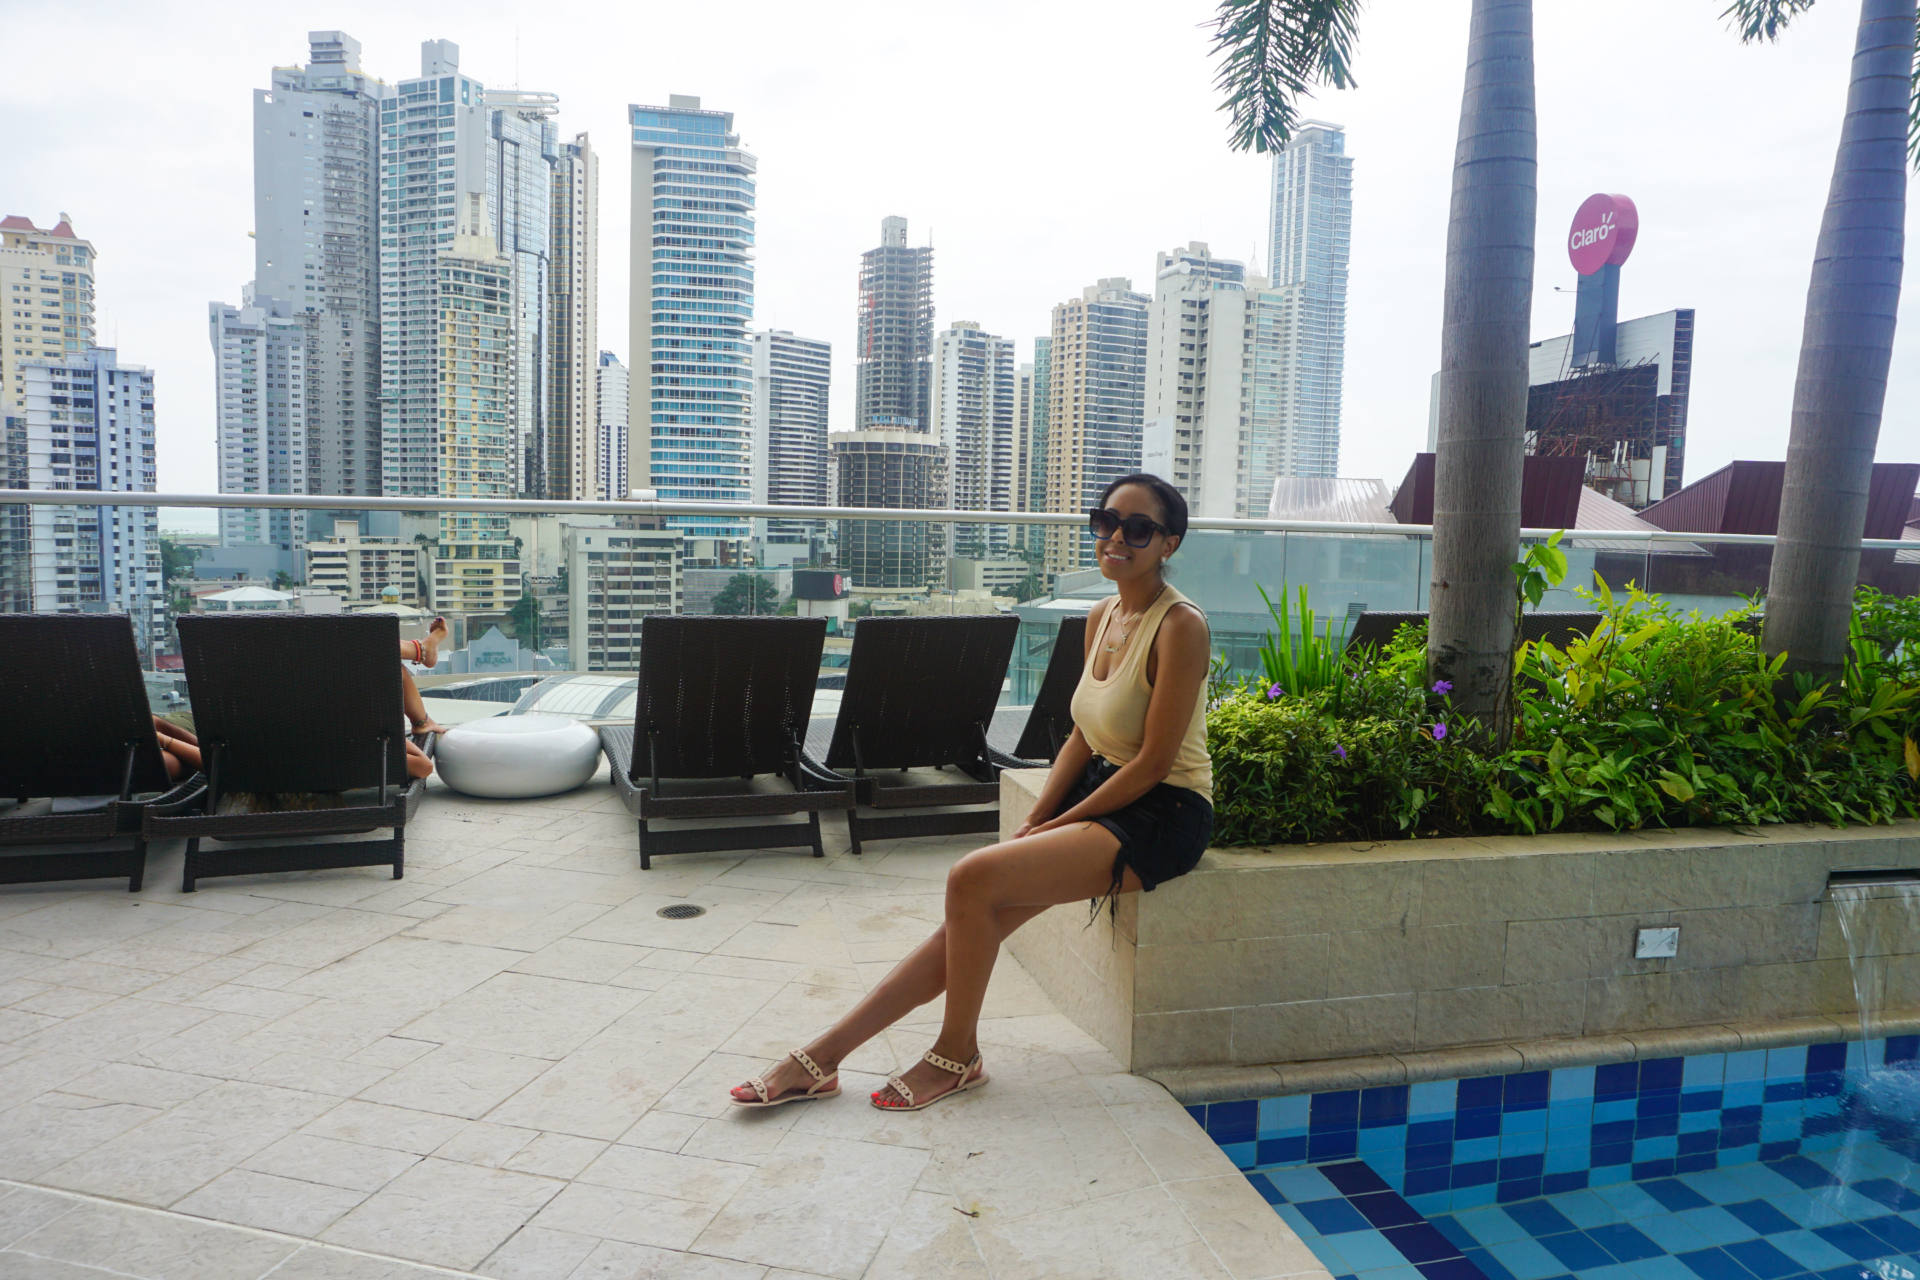 hard rock hotel megapolis